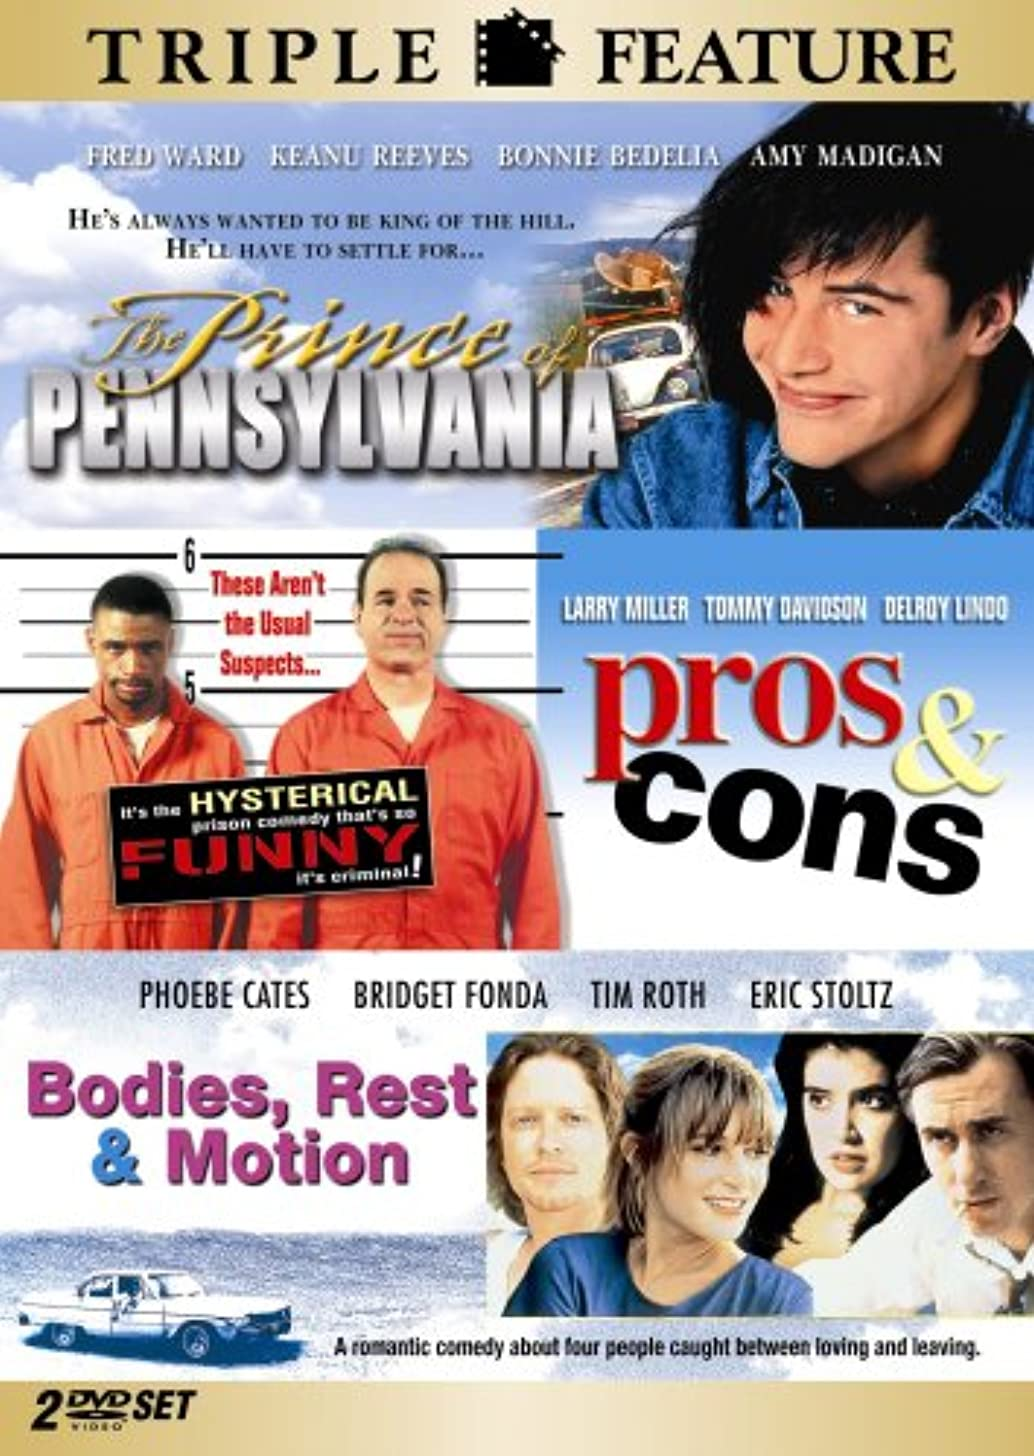 The Prince of Pennsylvania / Pros & Cons / Bodies, Rest & Motion